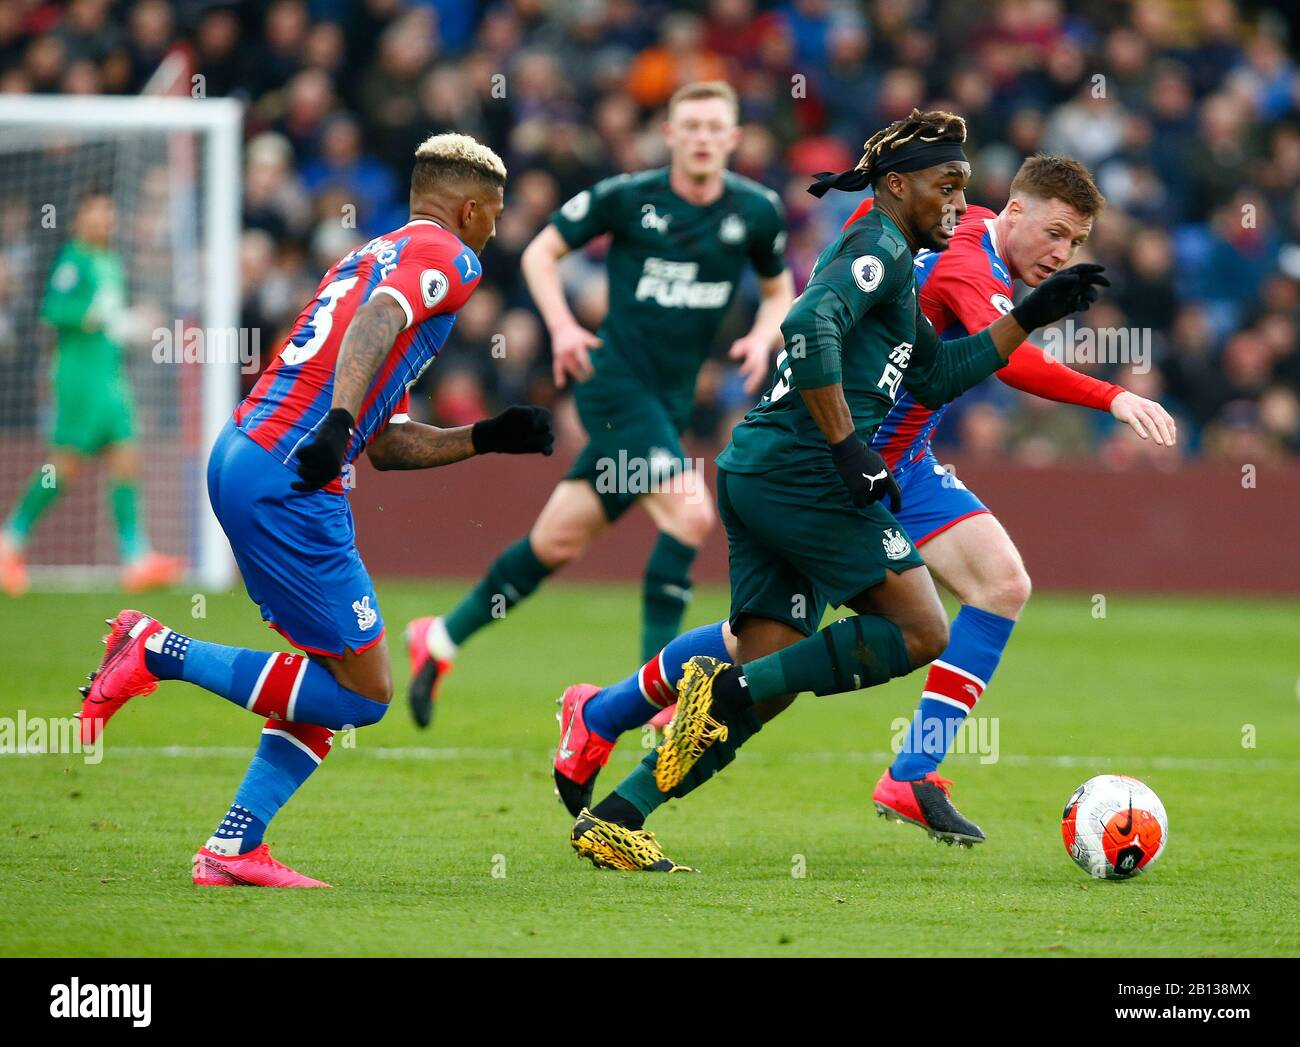 LONDON, UNITED KINGDOM. FEBRUARY 22 Newcastle United's Allan Saint-Maximin during English Premier League between Crystal Palace and Newcastle United at Selhurst Park Stadium, London, England on 22 February 2020 Credit: Action Foto Sport/Alamy Live News Stock Photo